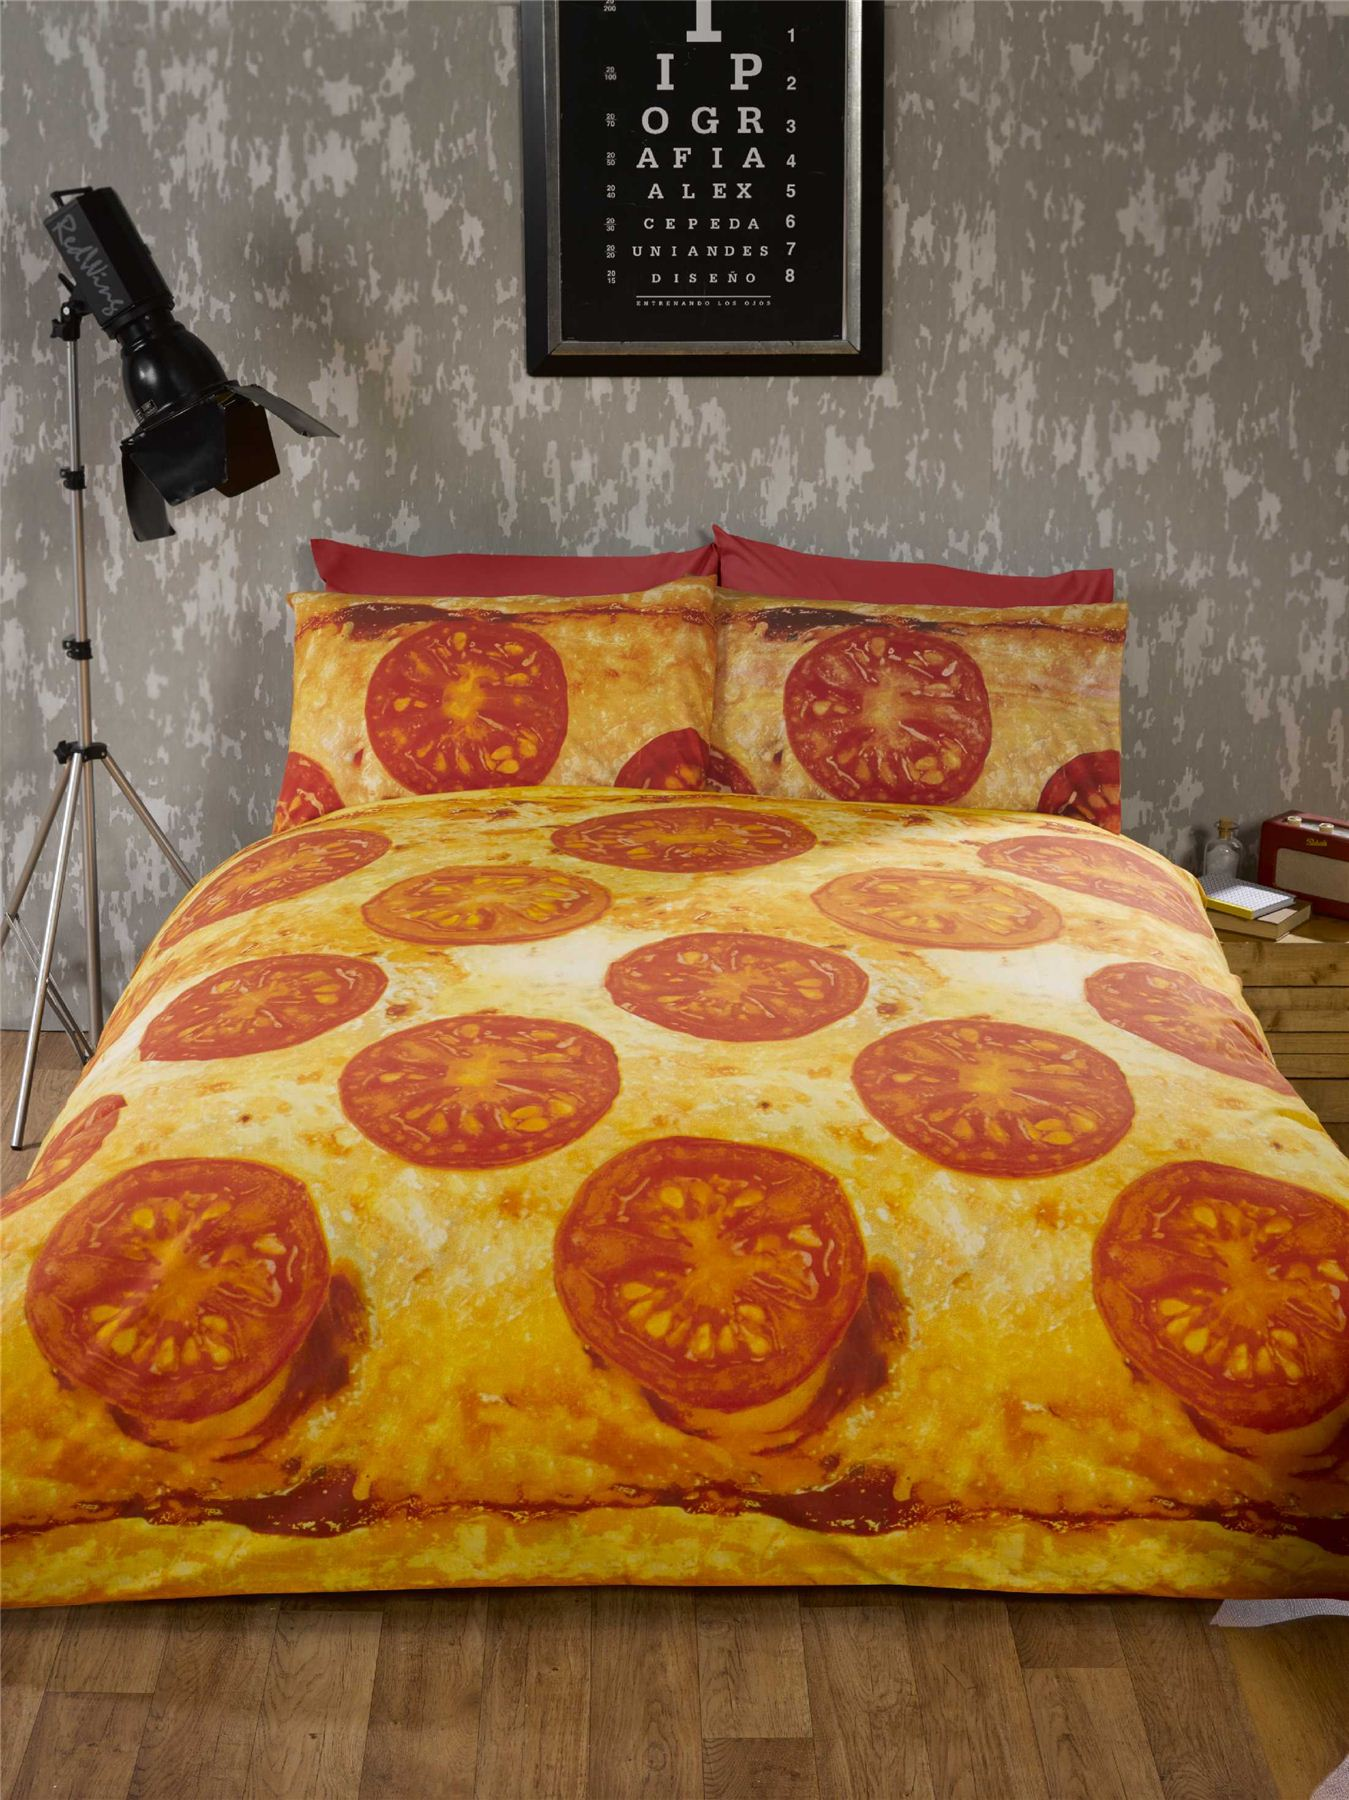 Pizza Bedding Fun Teenager Student Bedding Photo Print ...